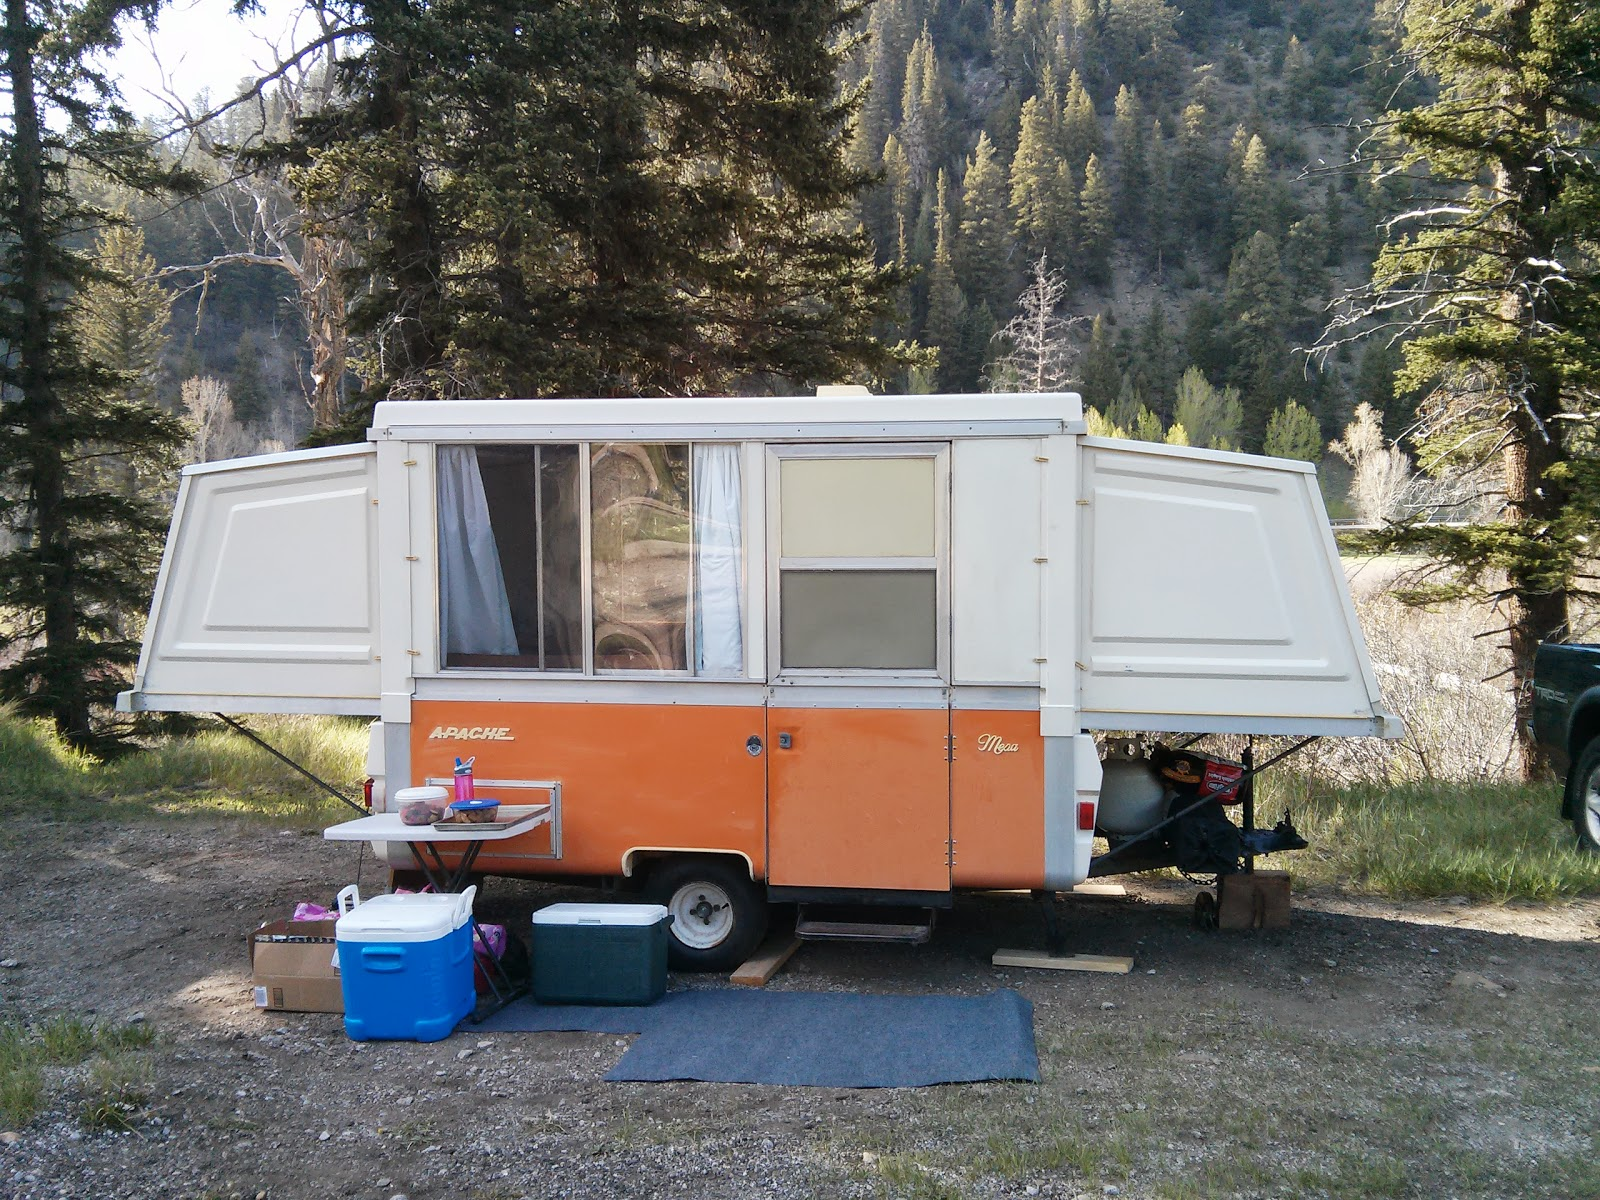 1976 Apache Mesa Camper, orange hard side